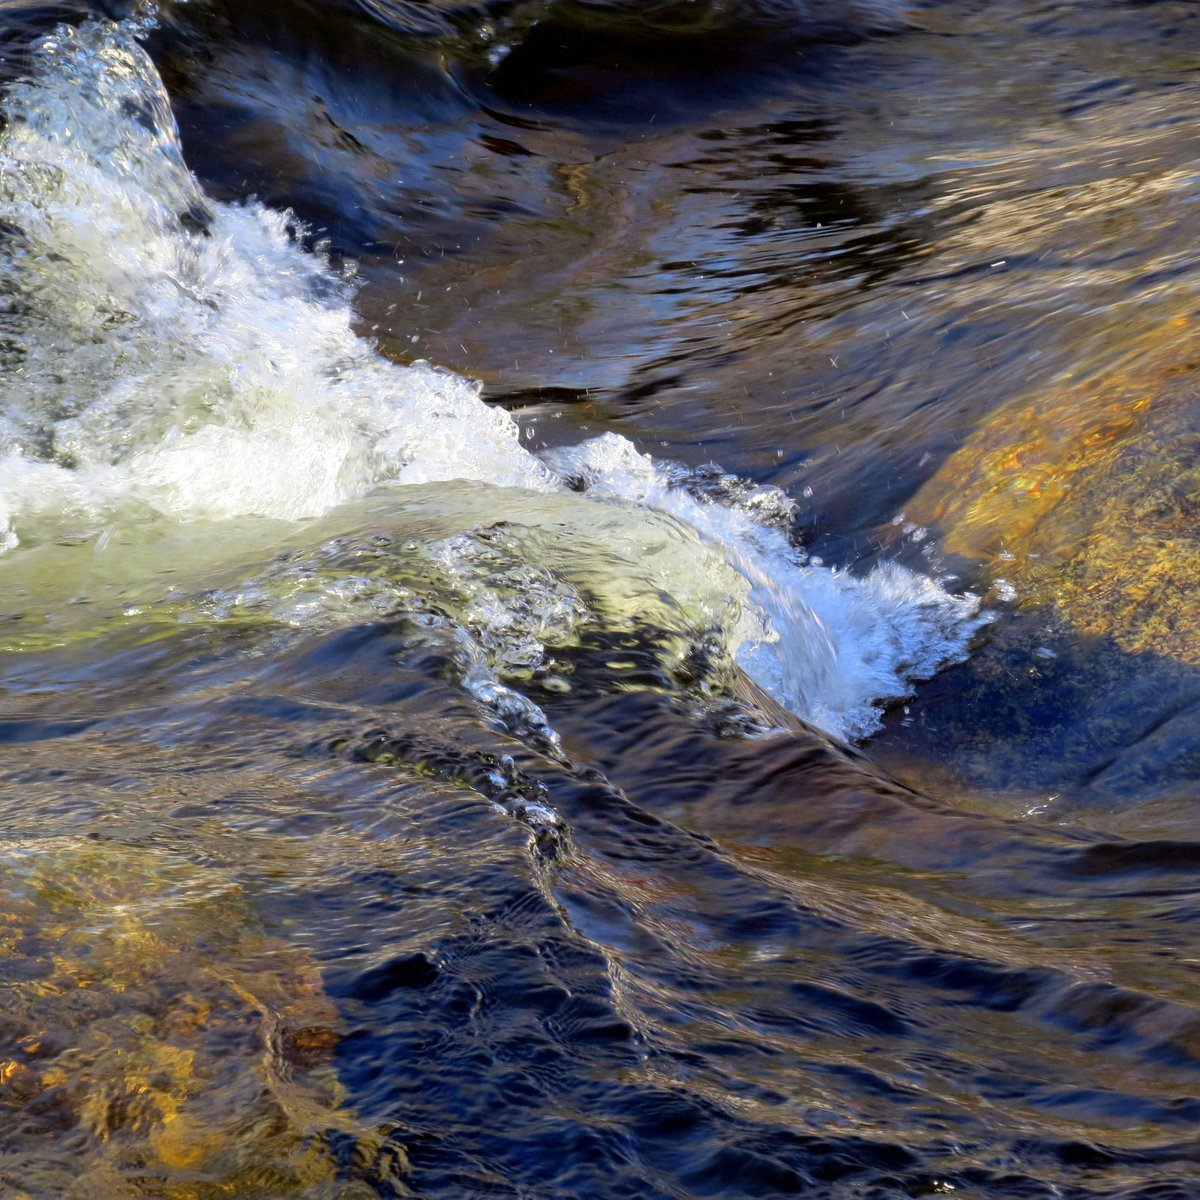 3. River Waves 3-9-13